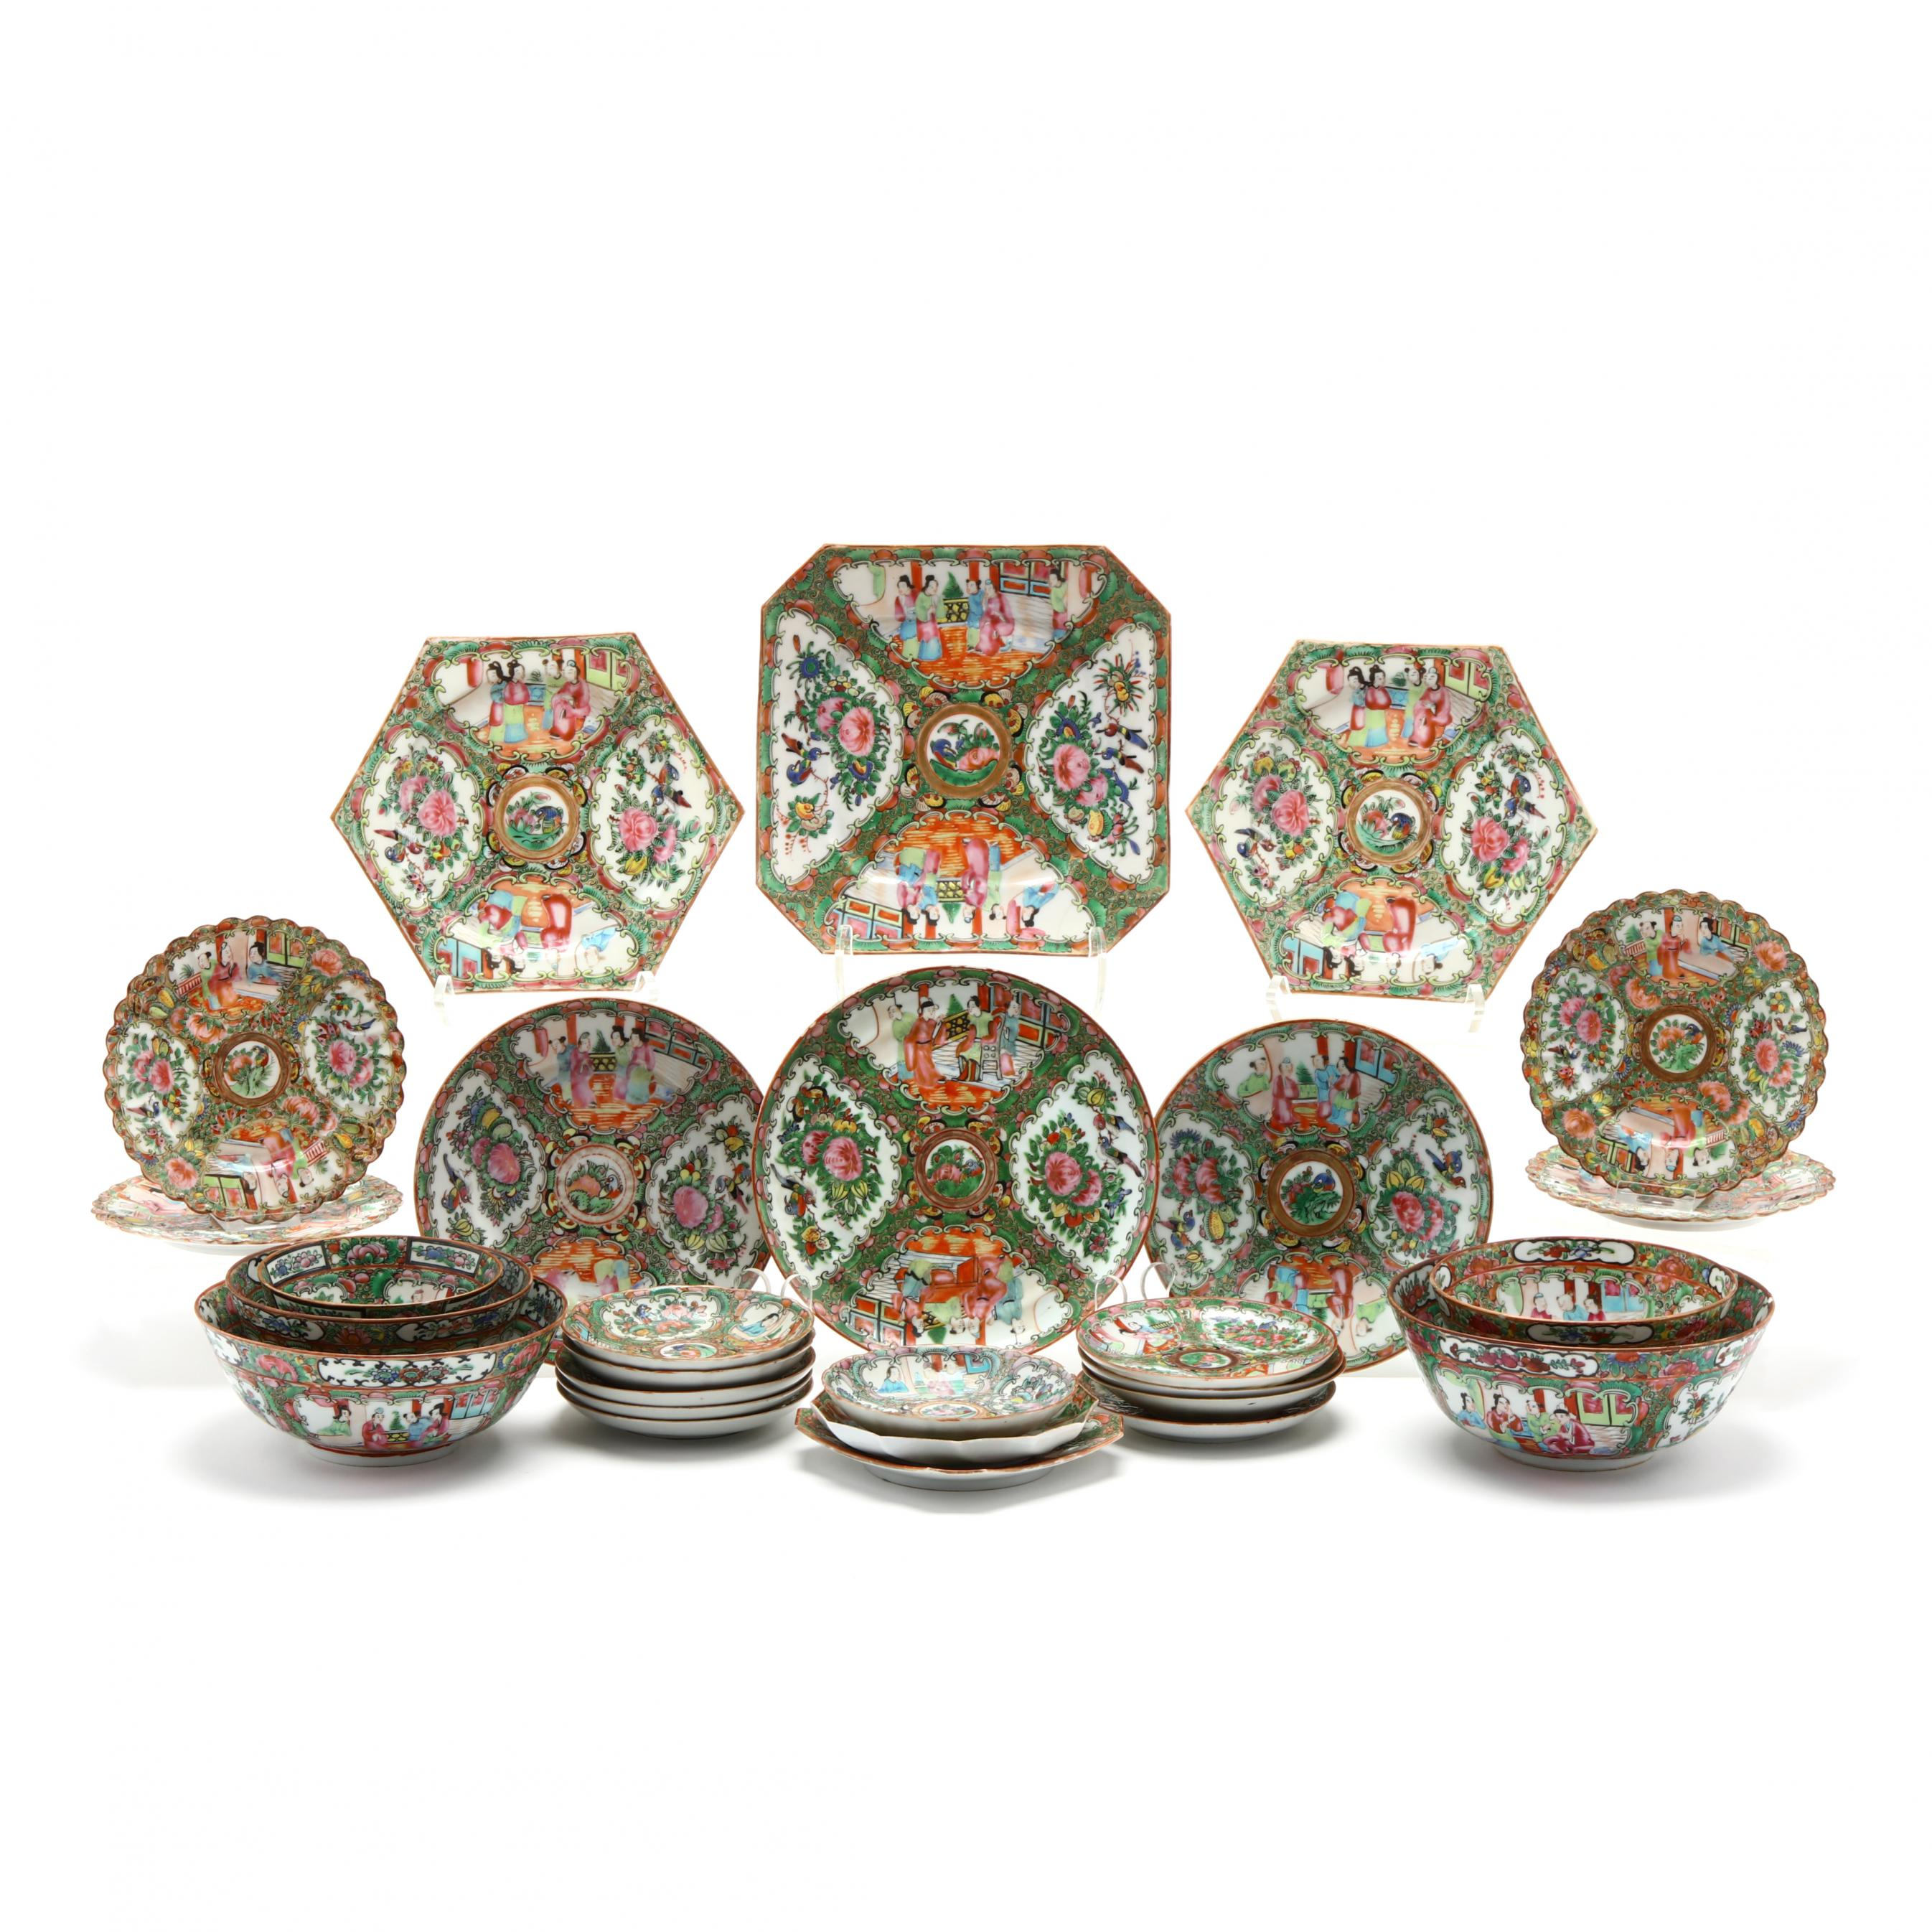 27-pieces-of-chinese-export-rose-medallion-porcelain